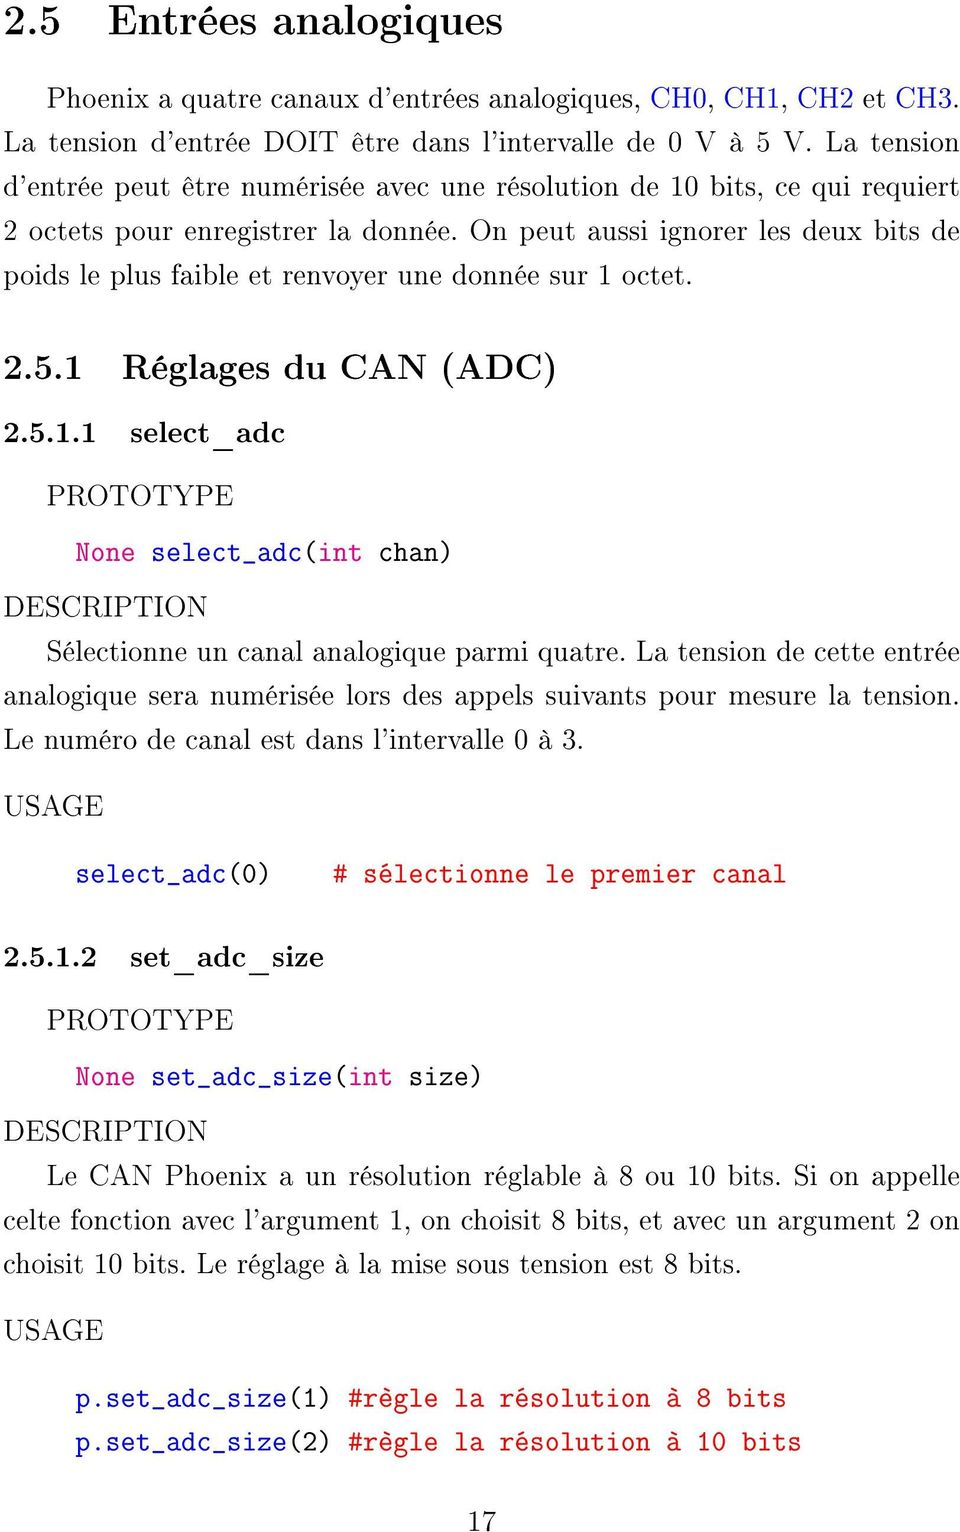 On peut aussi ignorer les deux bits de poids le plus faible et renvoyer une donnée sur 1 octet. 2.5.1 Réglages du CAN (ADC) 2.5.1.1 select_adc PROTOTYPE None select_adc(int chan) DESCRIPTION Sélectionne un canal analogique parmi quatre.